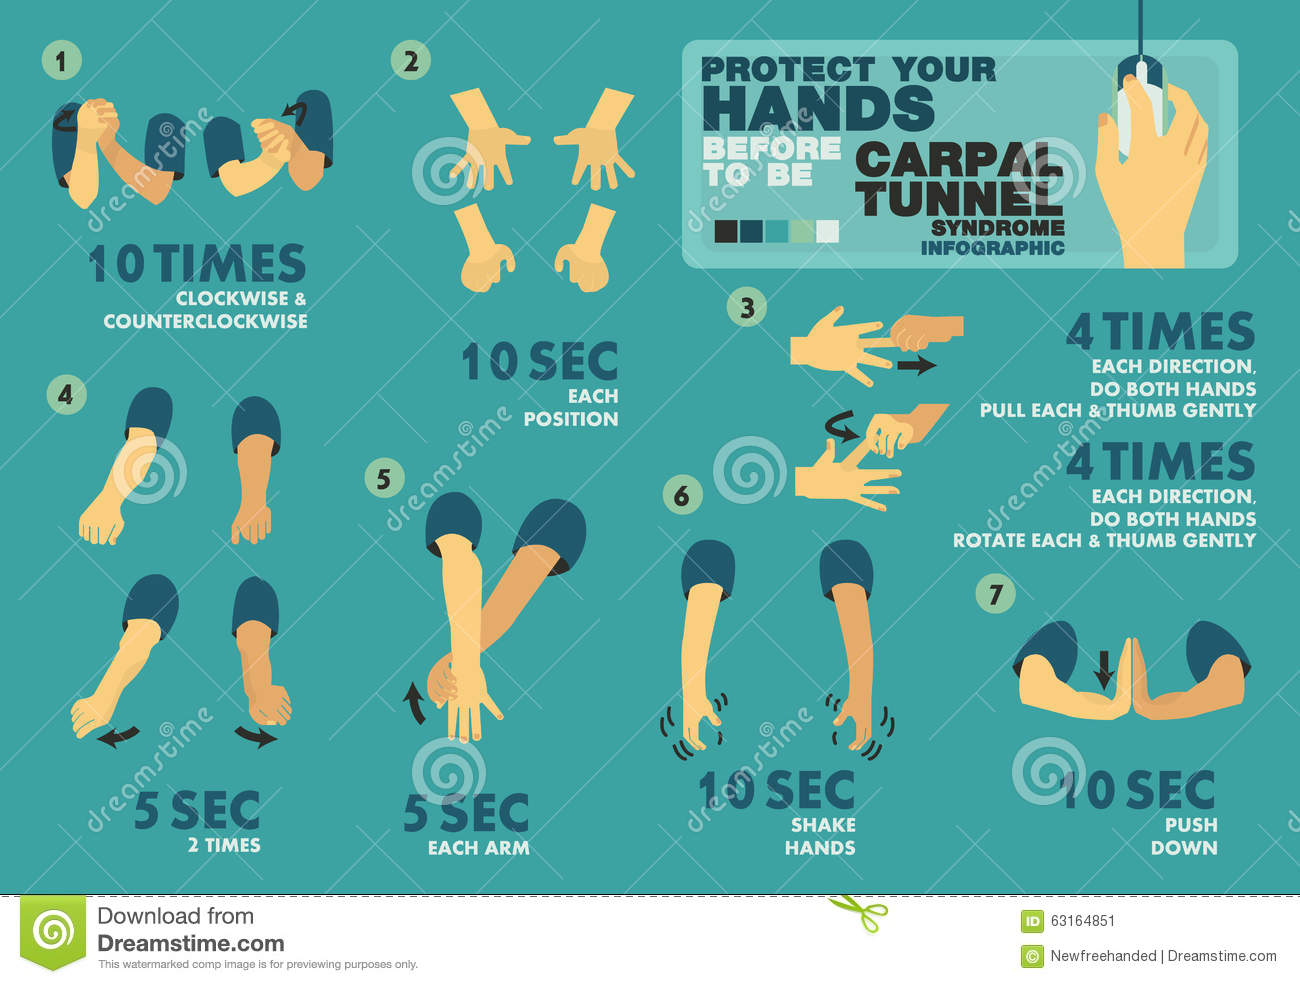 Protect Your Hands Before To Be Carpal Tunnel Syndome ...